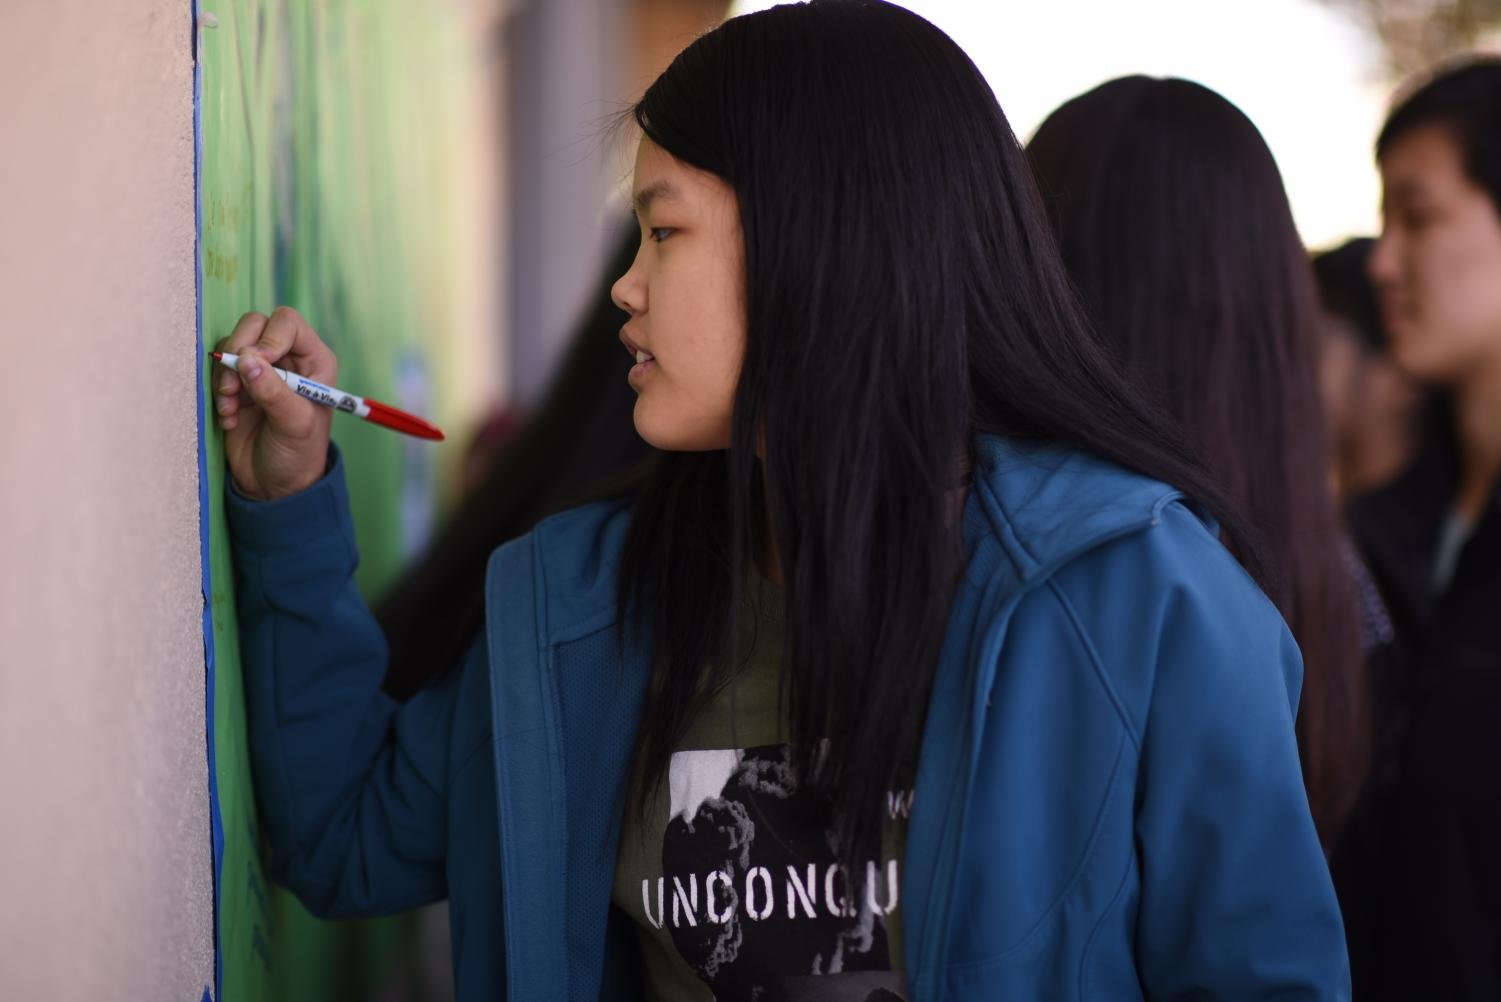 Helen+Yang+%2812%29+writes+a+message+on+a+banner+with+student+ideas+on+helping+the+planet.+Students%2C+who+were+encouraged+to+wear+green+or+blue%2C+had+the+chance+to+write+messages+on+posters+and+sign+petitions+during+the+rally.